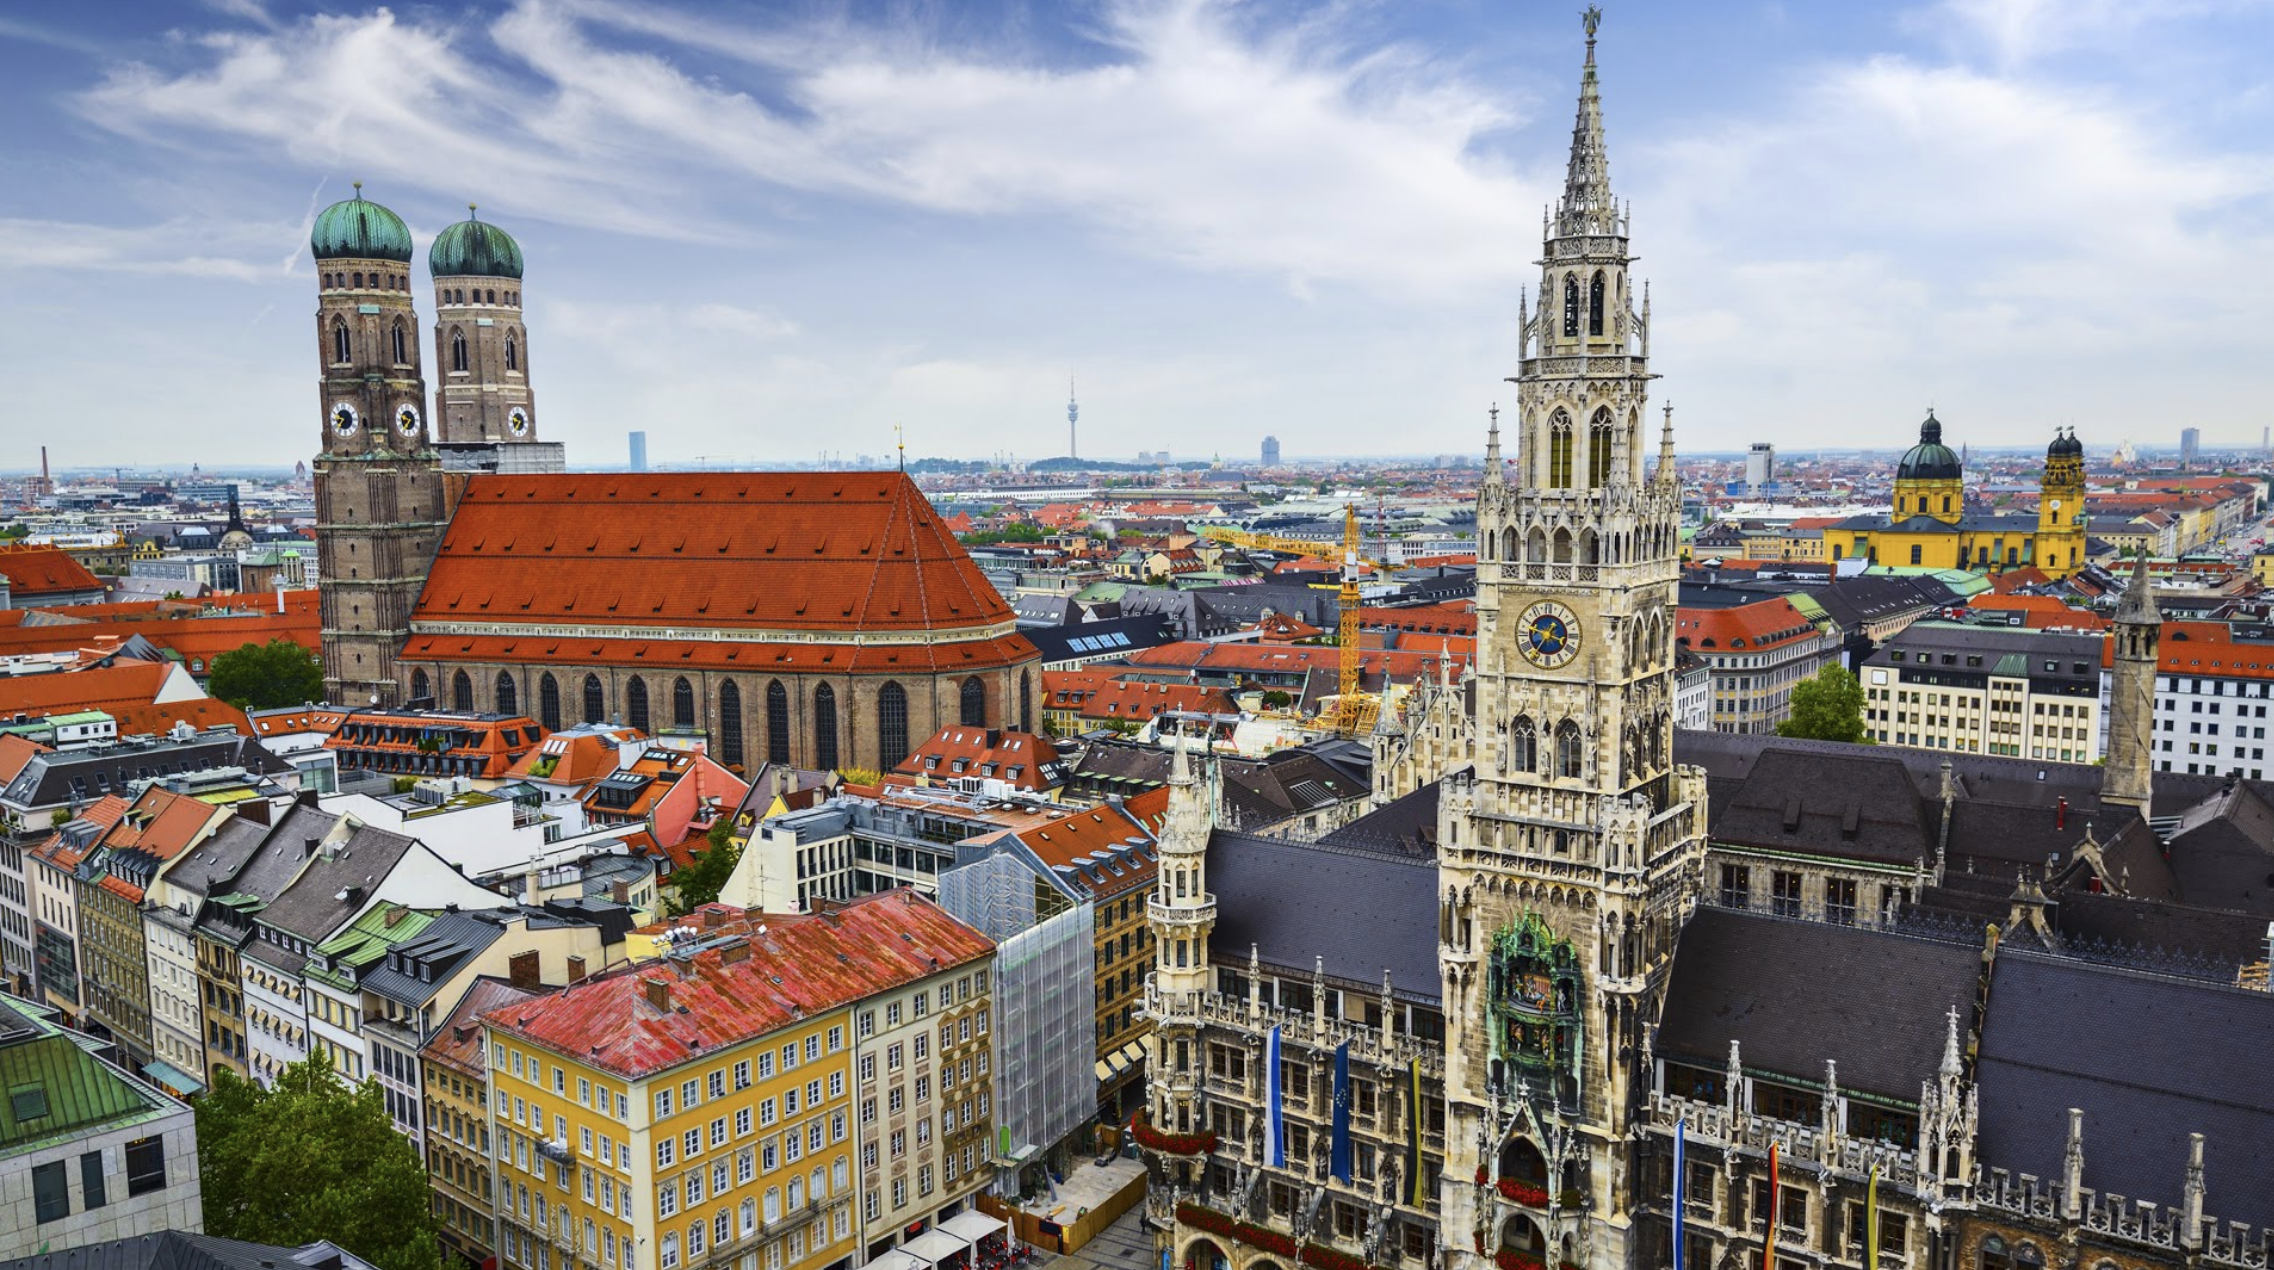 Oct 19:DEPART for Munich - Today you will transfer to the airport for a direct flight to Munich, Germany.